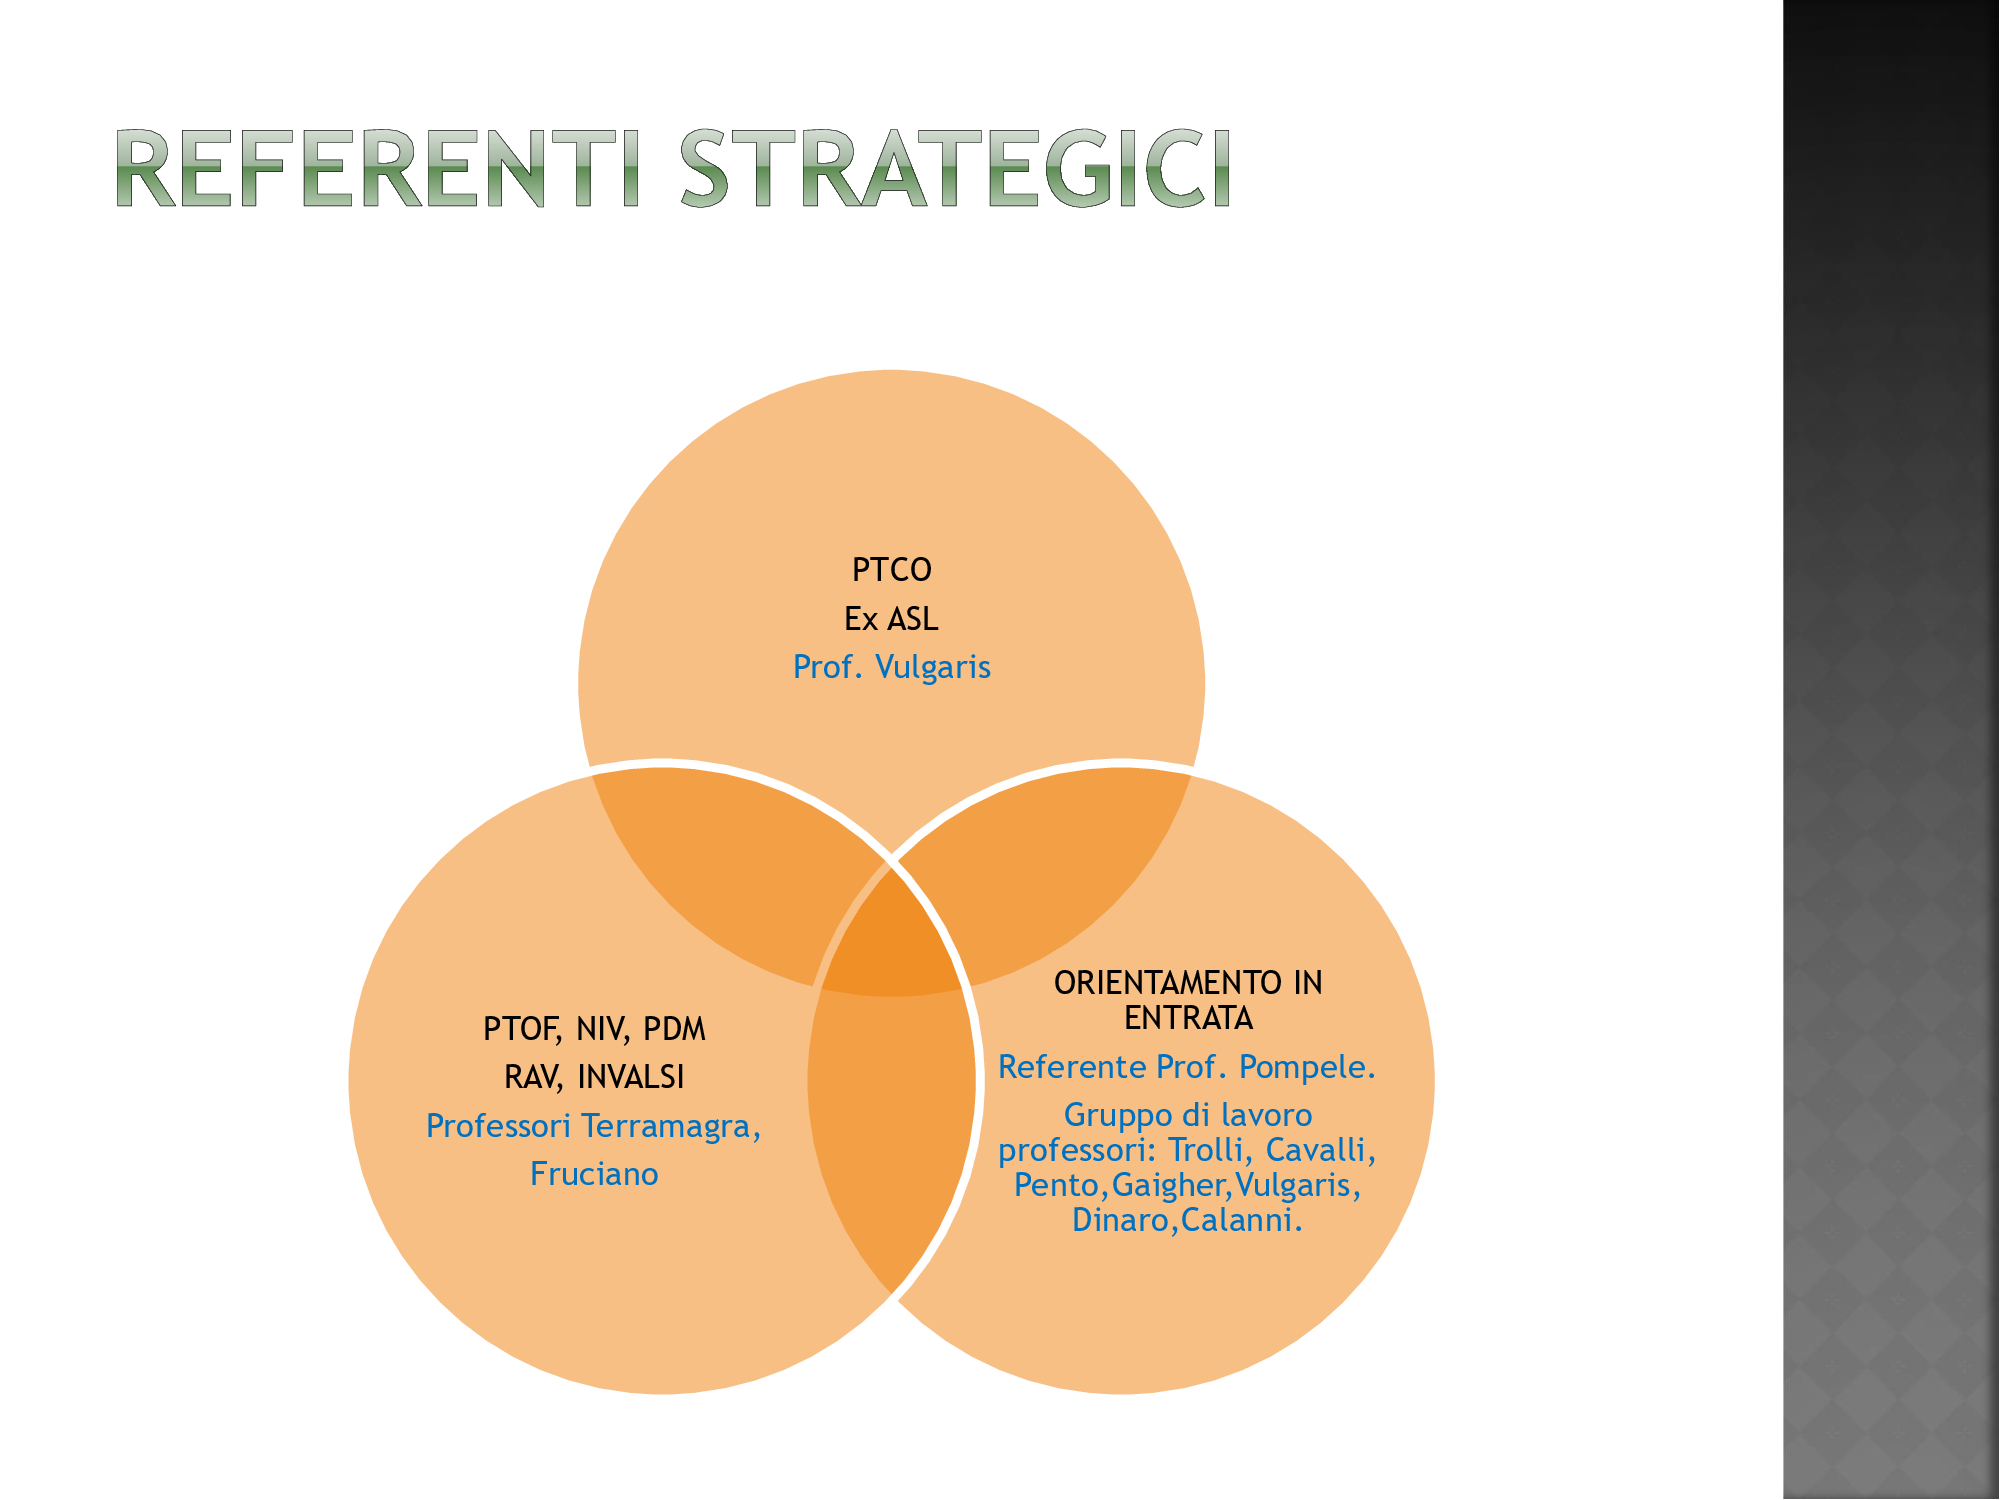 3 referenti strategici